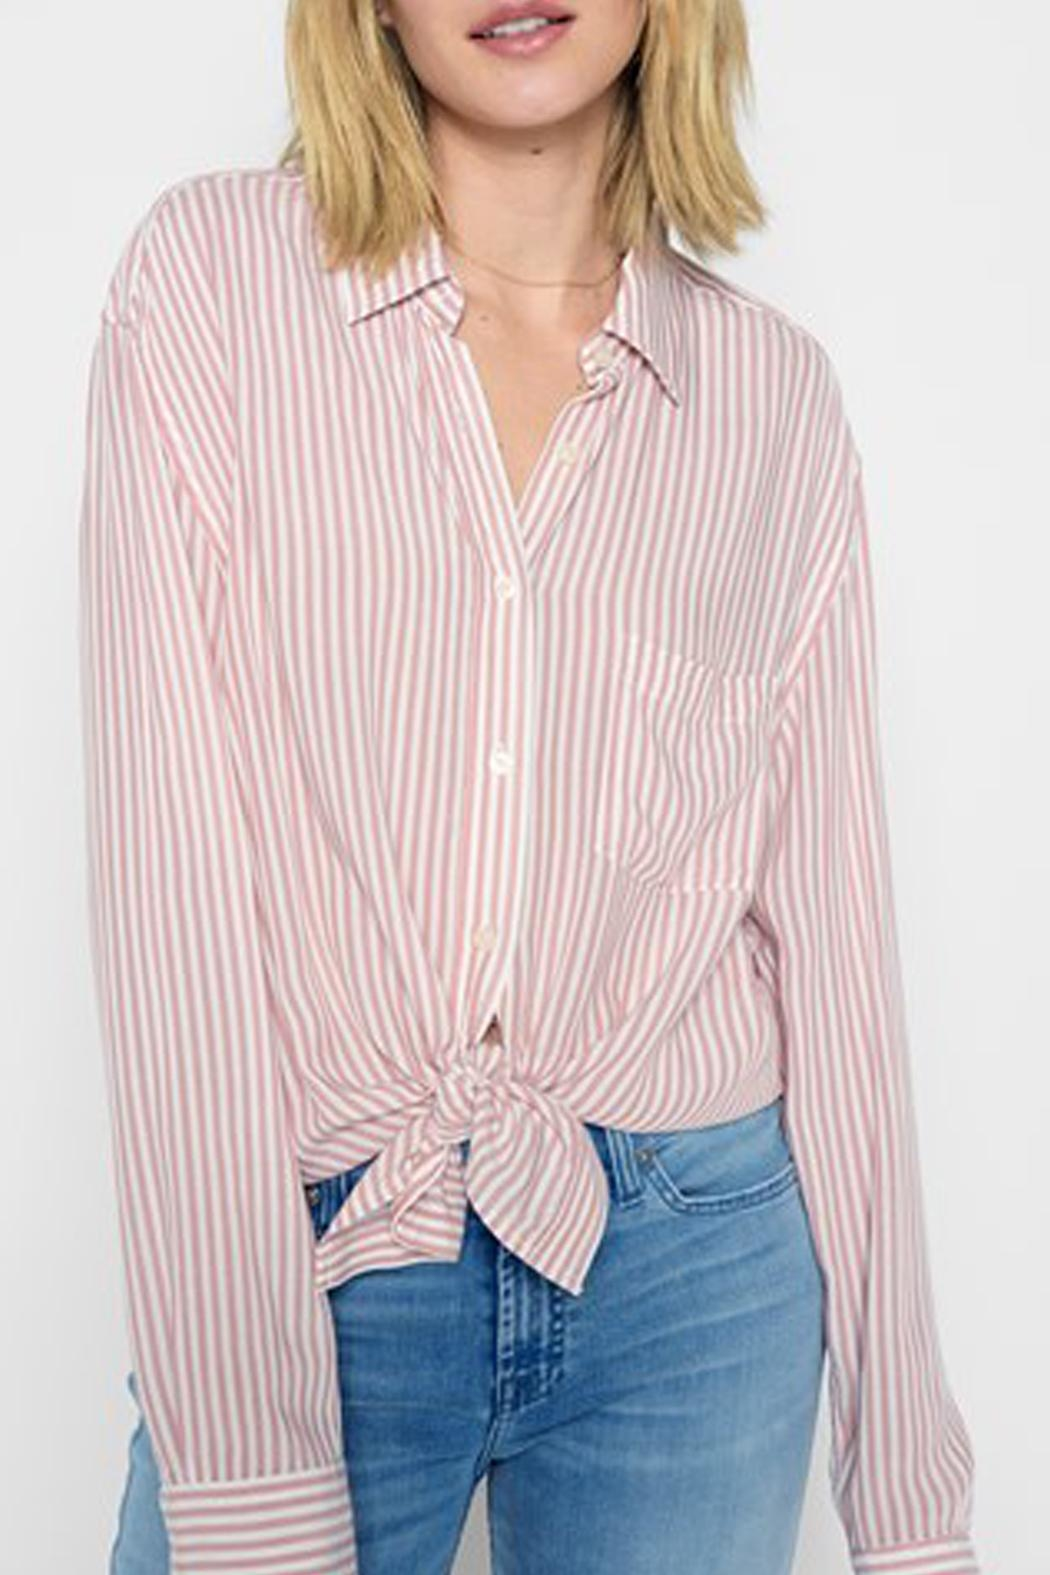 7 For all Mankind Hi-Lo Tie Shirt - Main Image